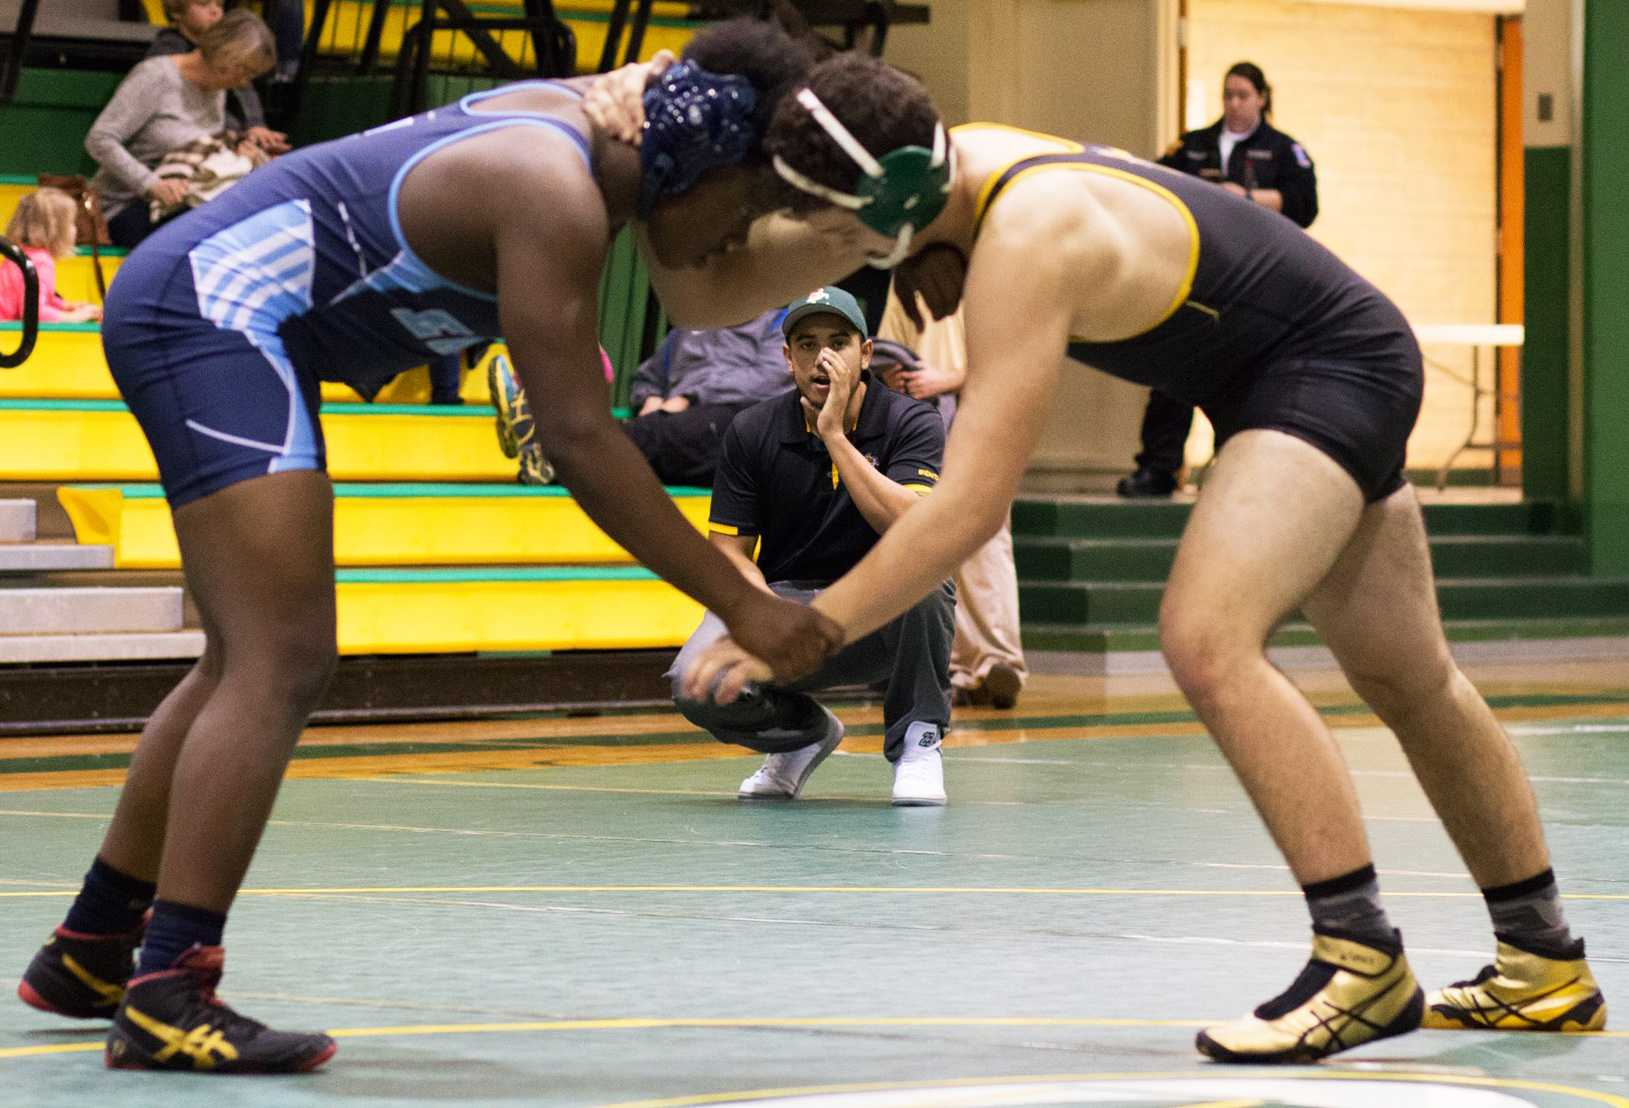 Dominic Davis, a freshman majoring in biology at Wichita State, coaches a wrestler from the side of the mat at Bishop Carrol High School. (Feb. 1, 2017)